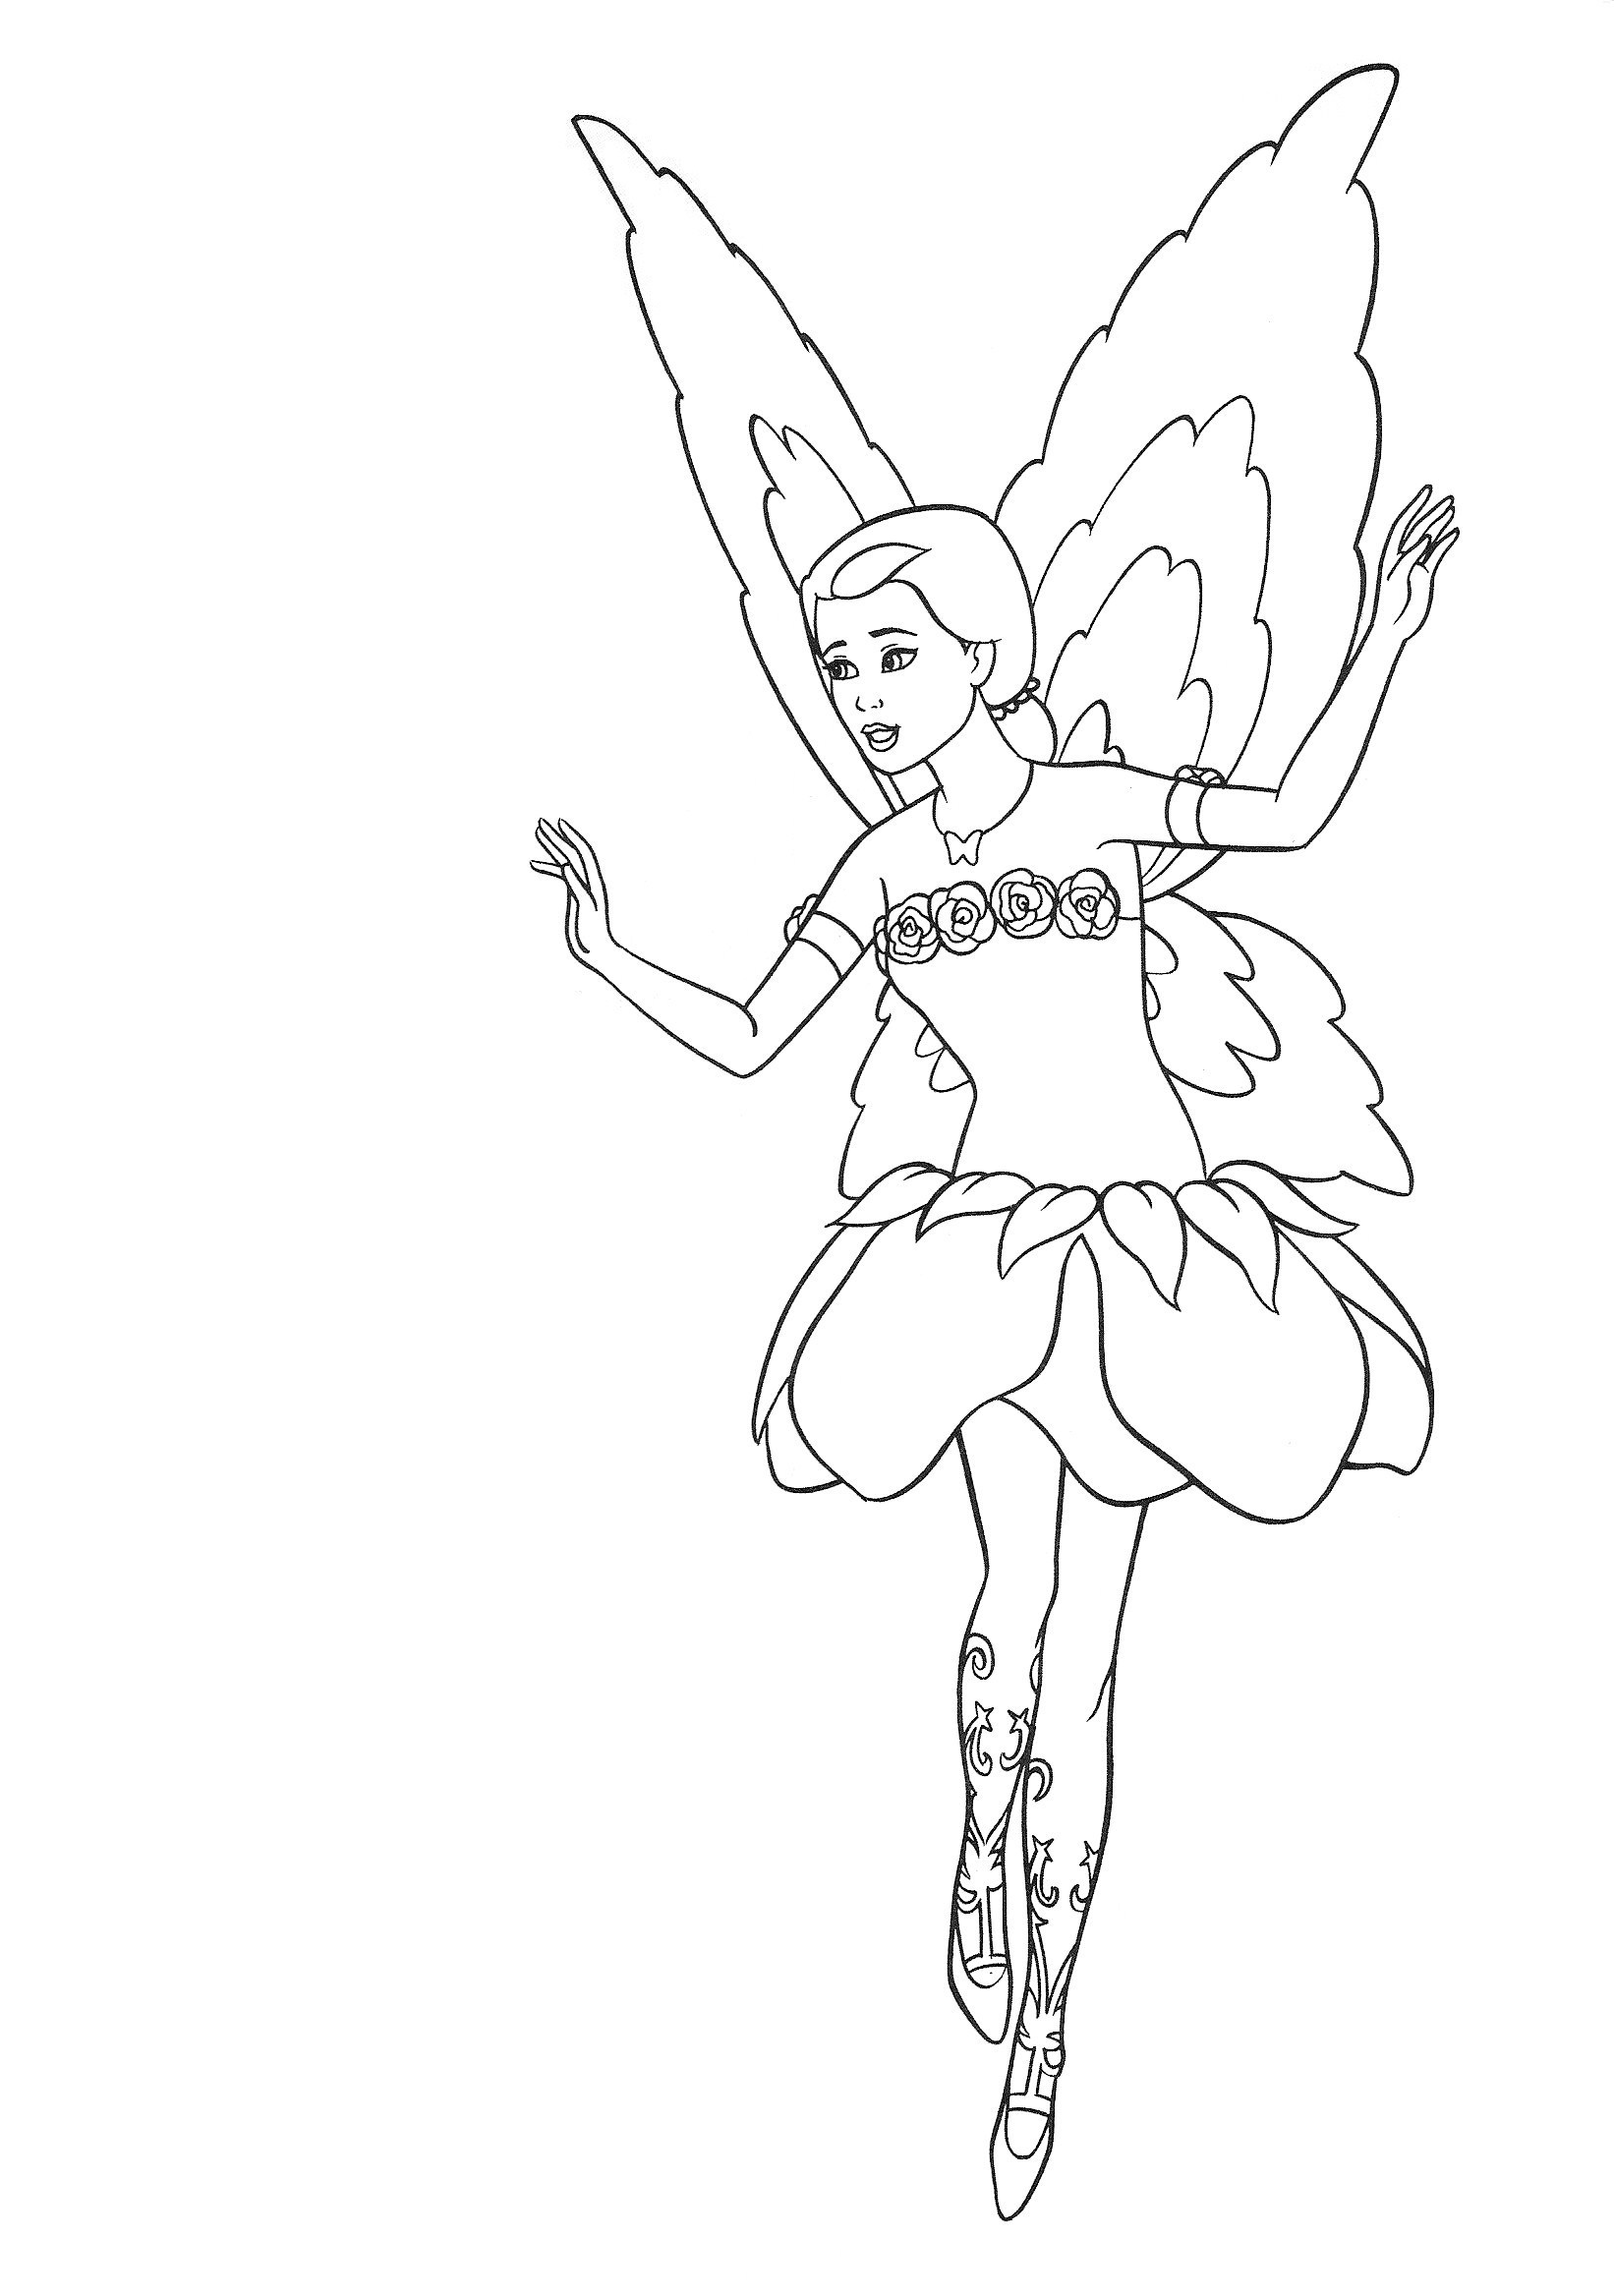 Barbie coloring pages z31, pokemon coloring pages